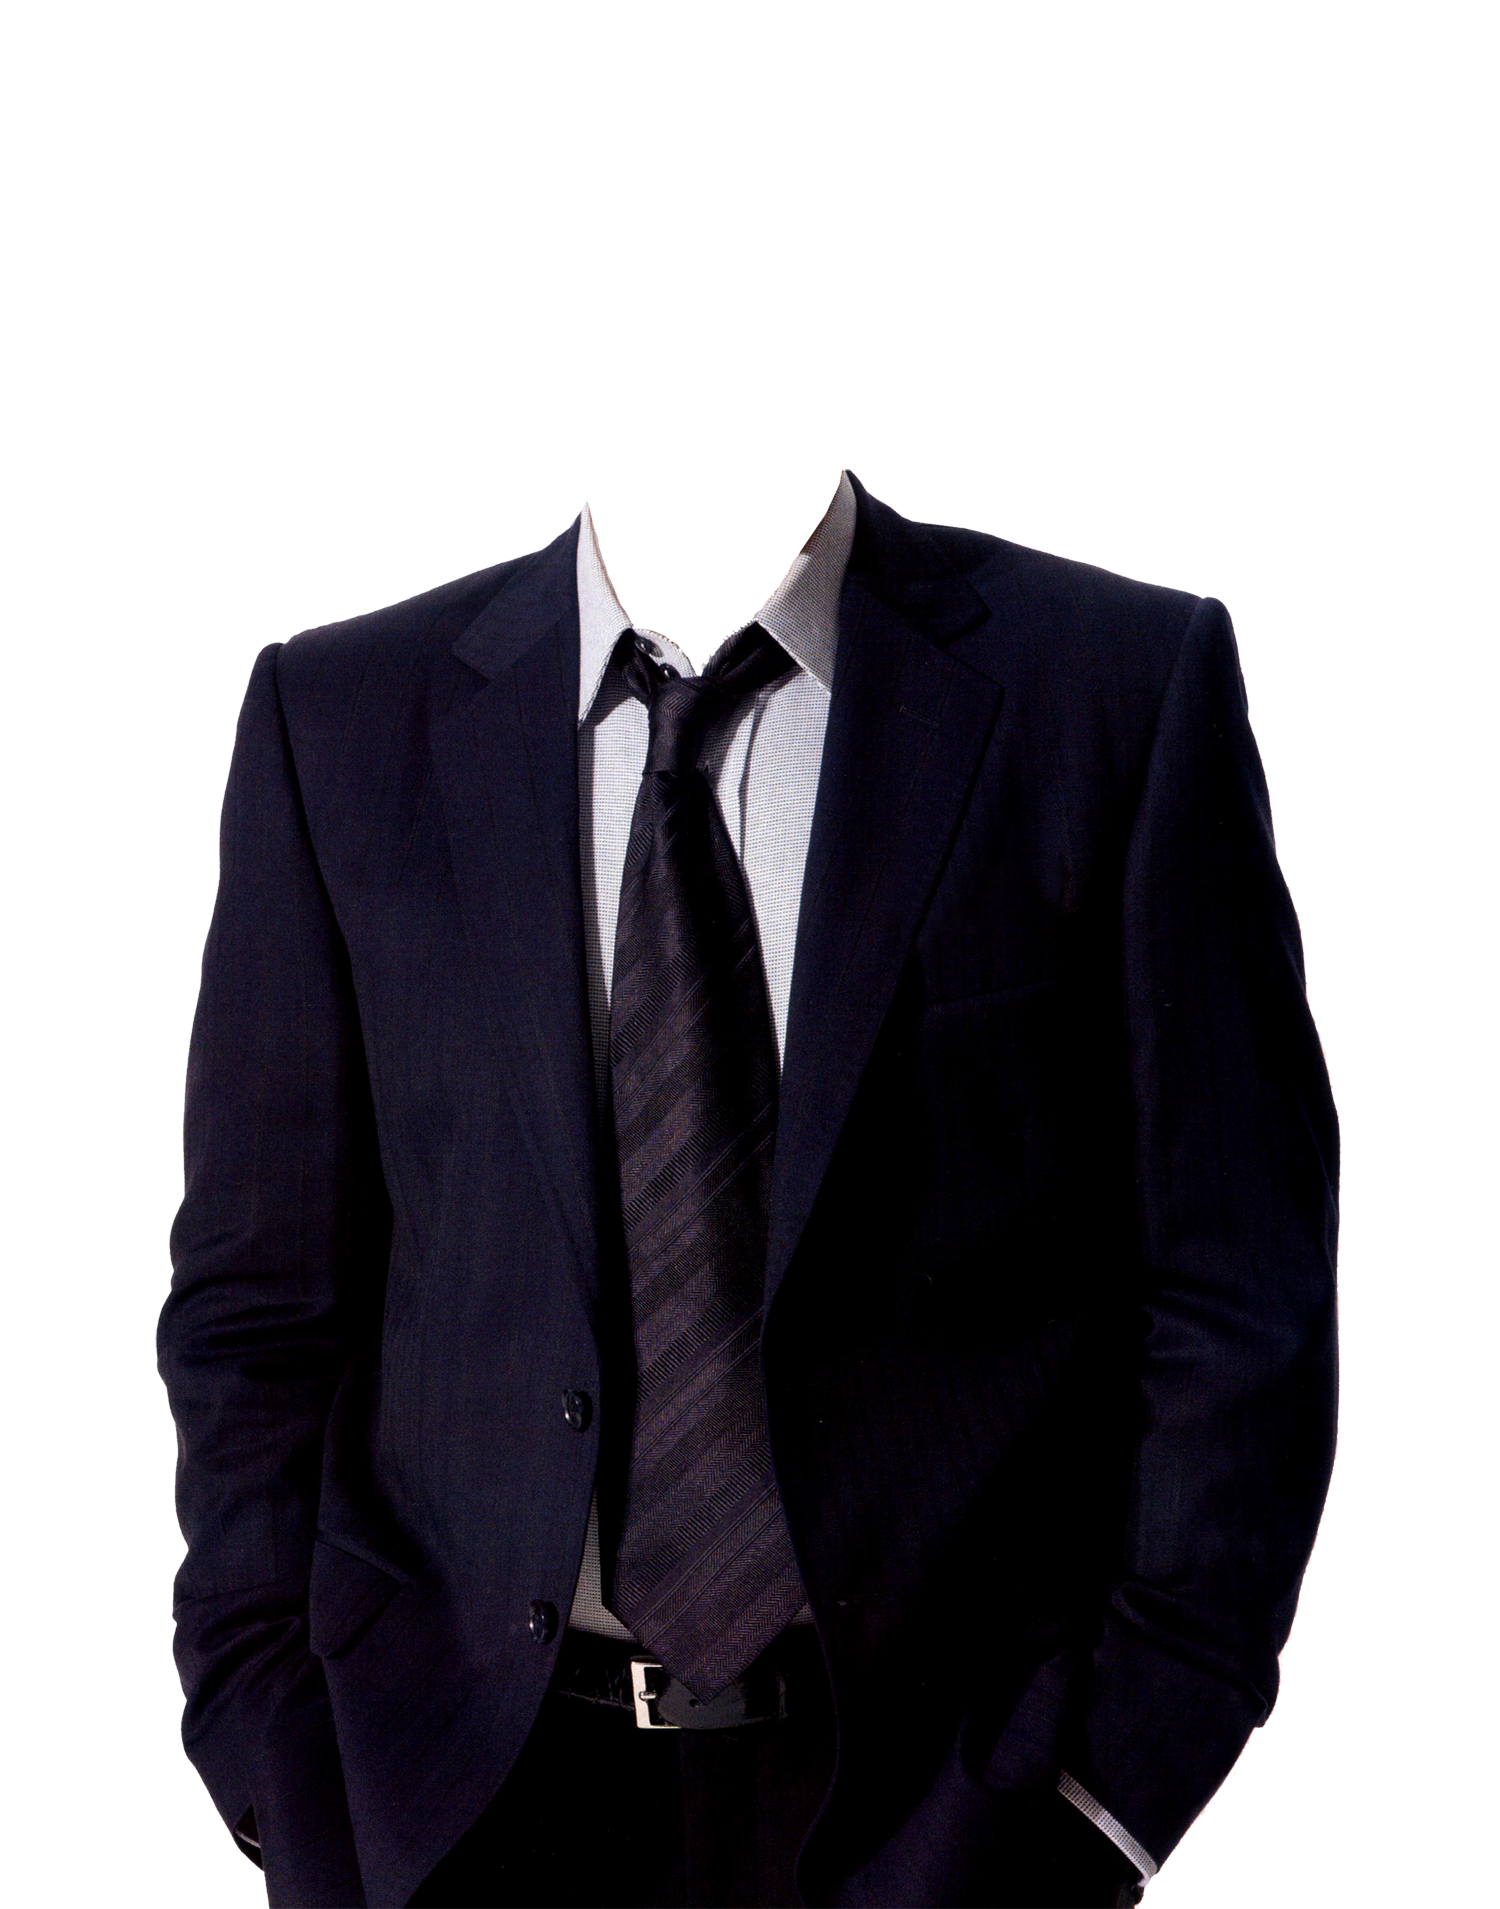 Suit PNG images free download.